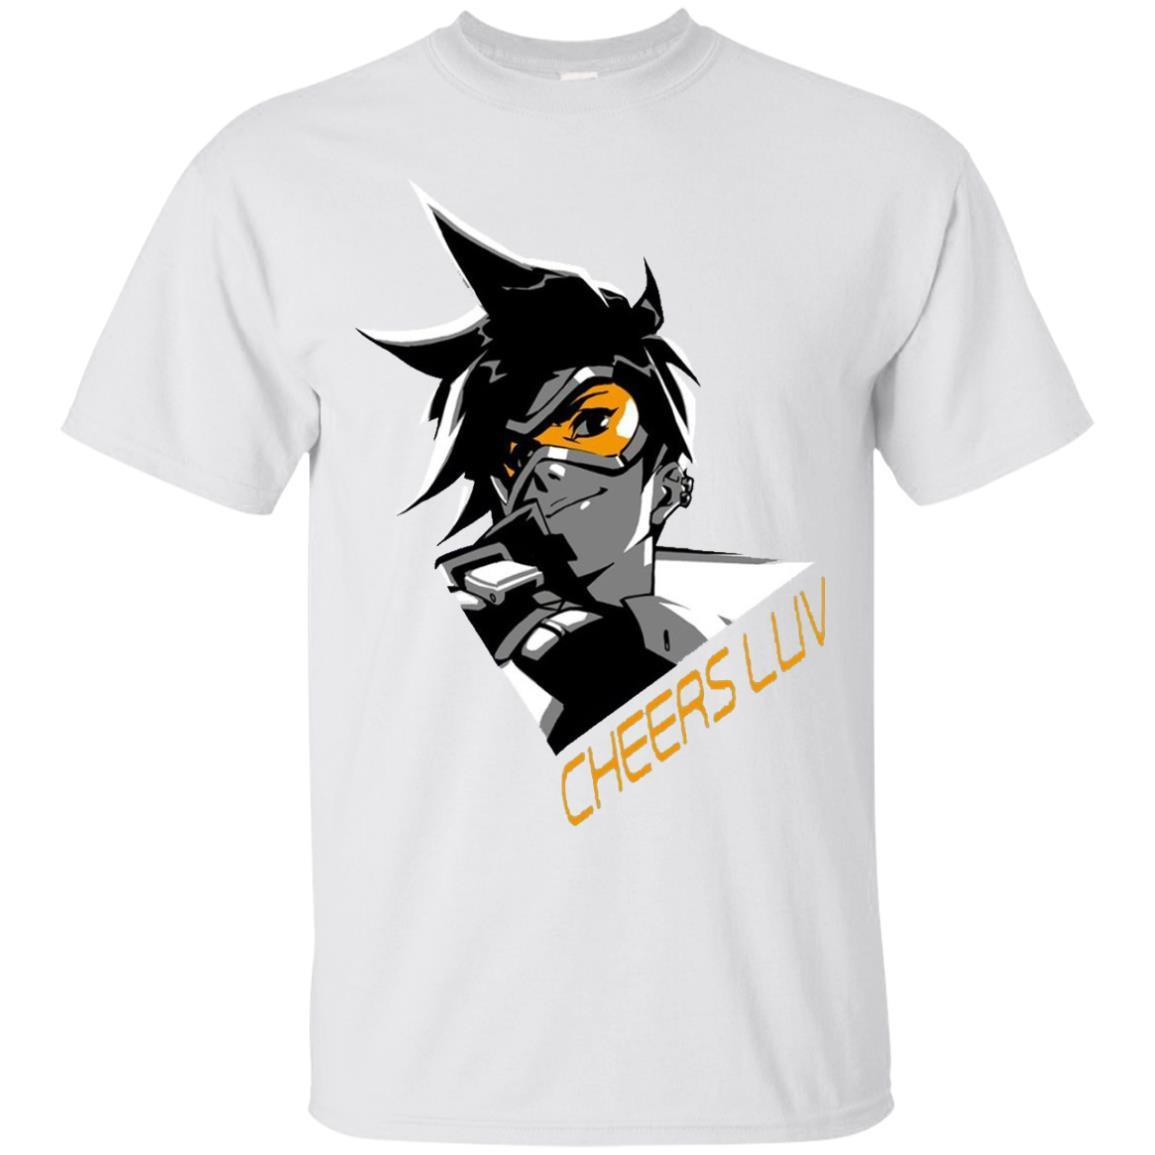 Overwatch Tracer Cheers Spray Tee Shirt